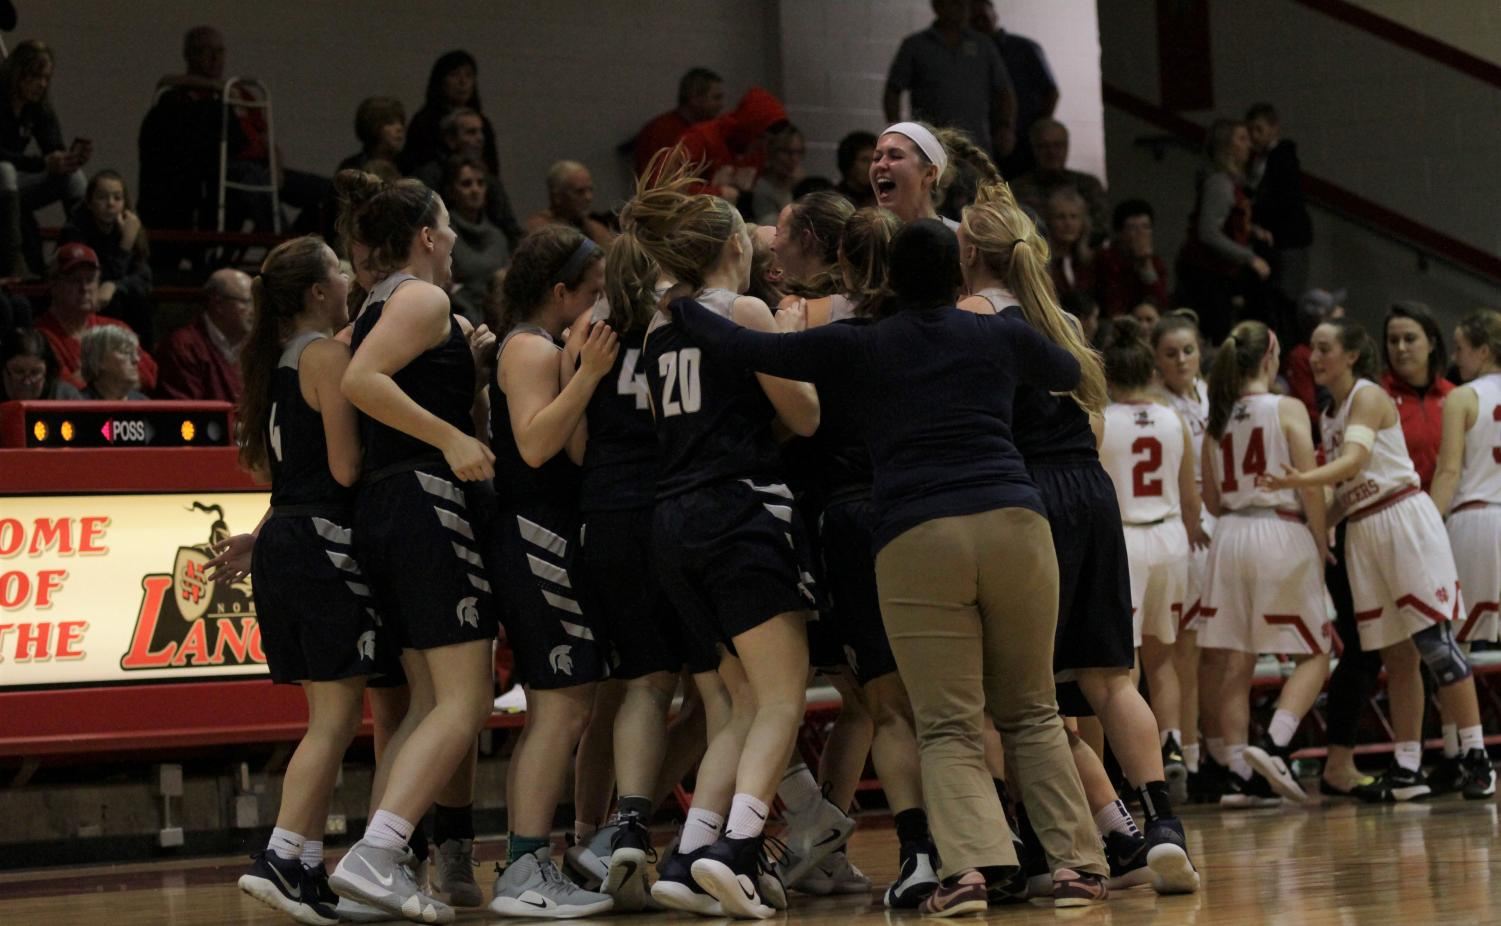 The Pleasant Valley Girls basketball team celebrates their victory against the 2nd ranked North Scott Lancers.